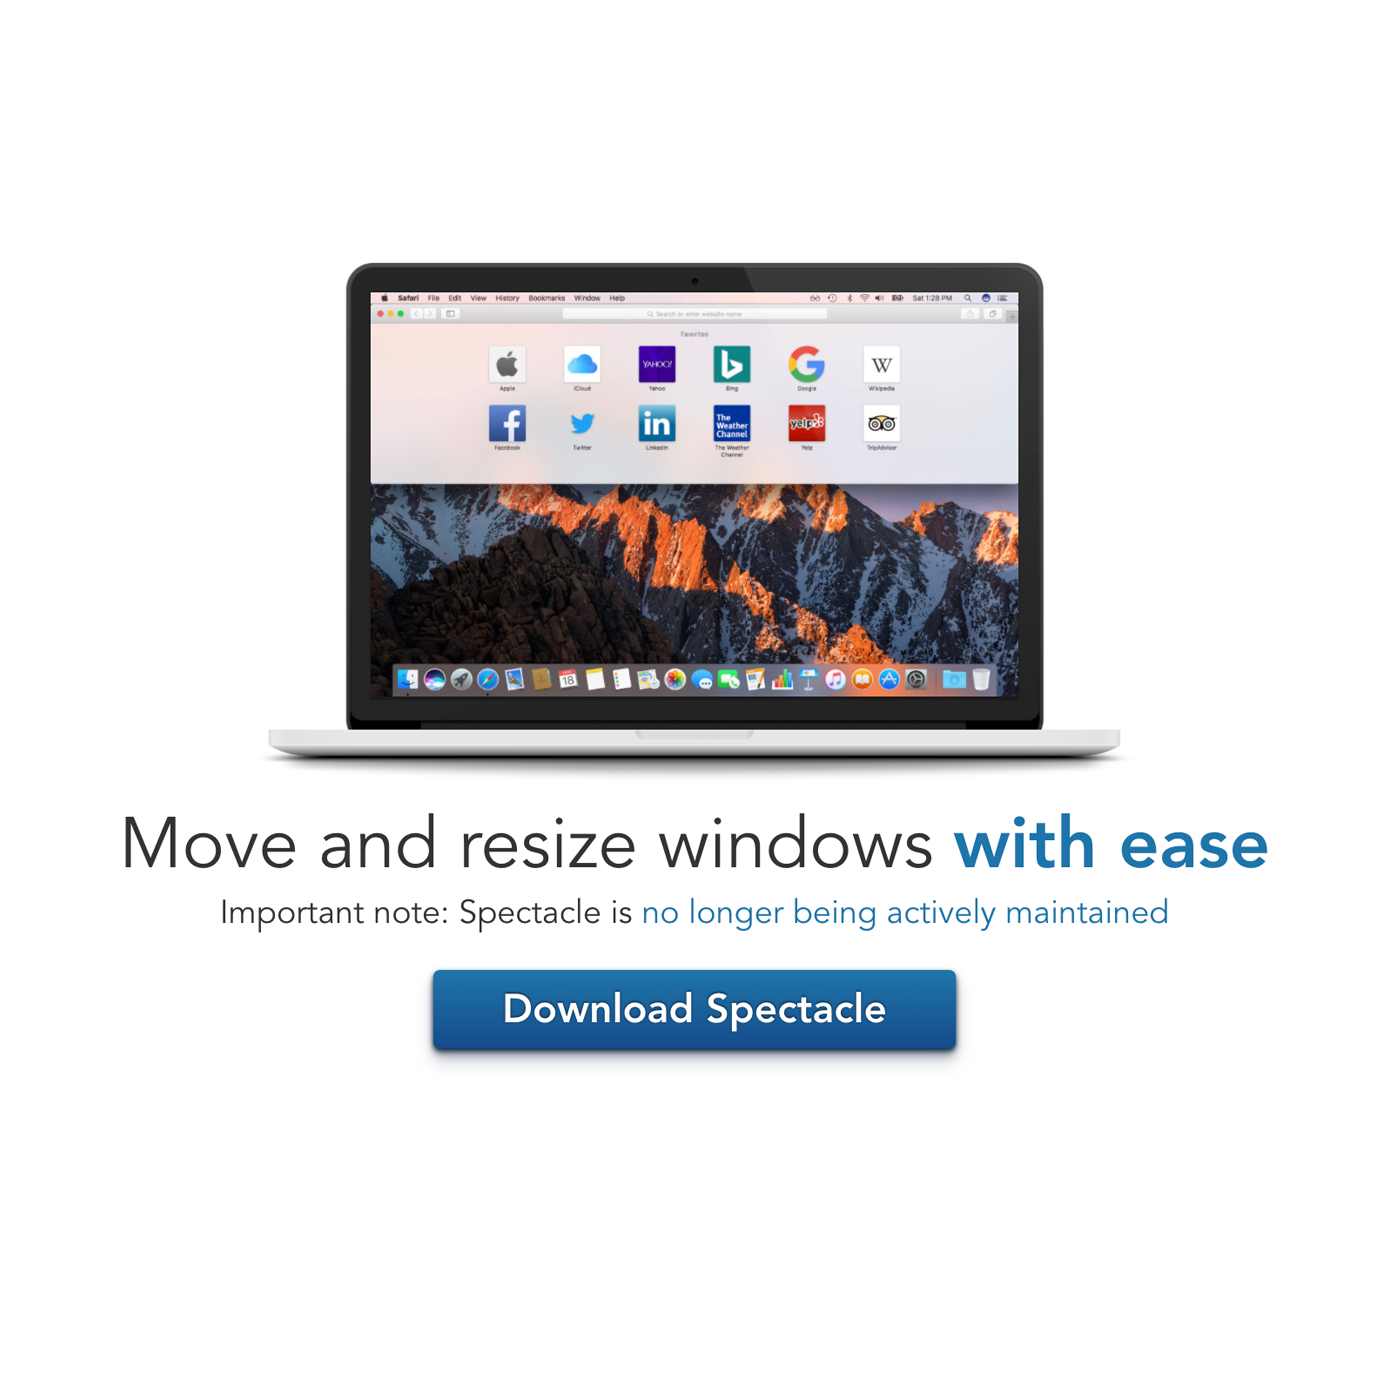 An image of a laptop screen with the words 'move and resize windows with ease' underneath, followed by a 'Download Spectacle' button.